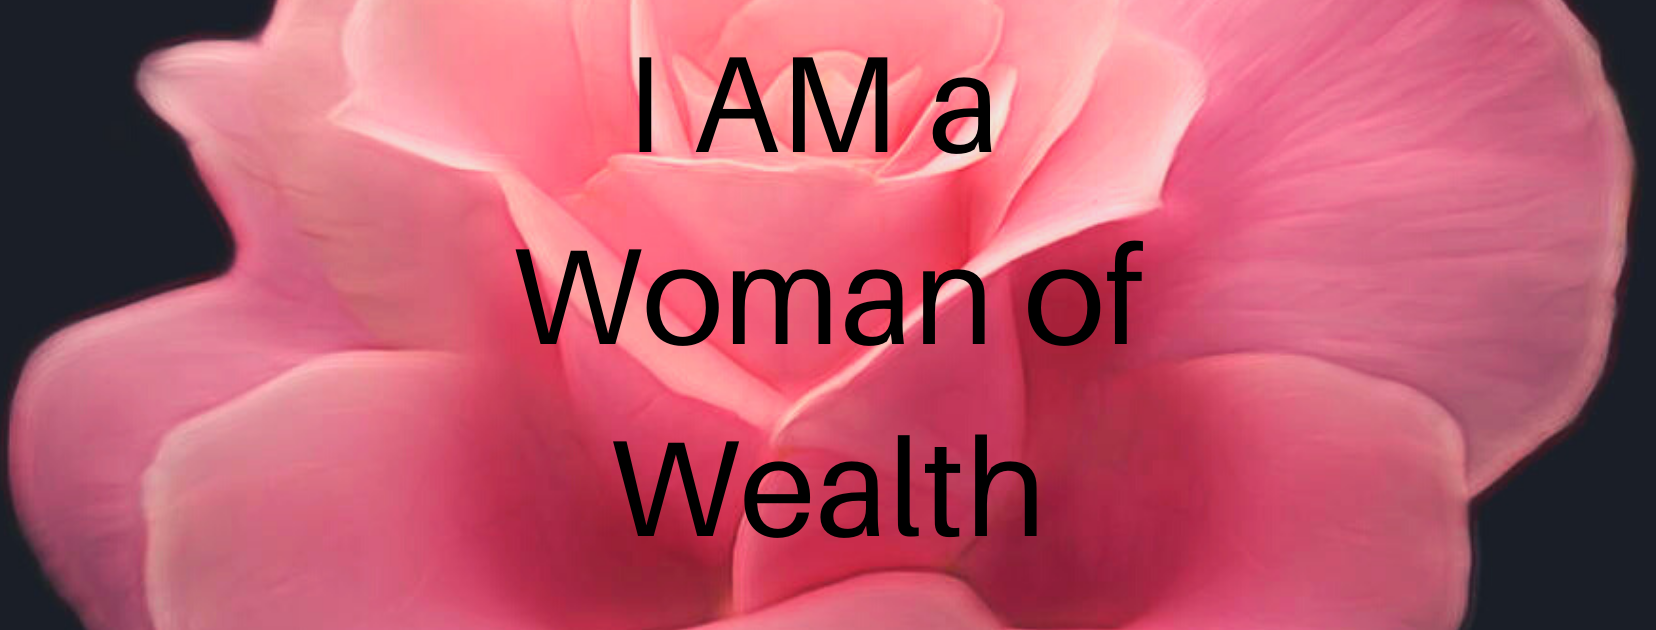 pink rose with words I AM A WOMAN OF WEALTH